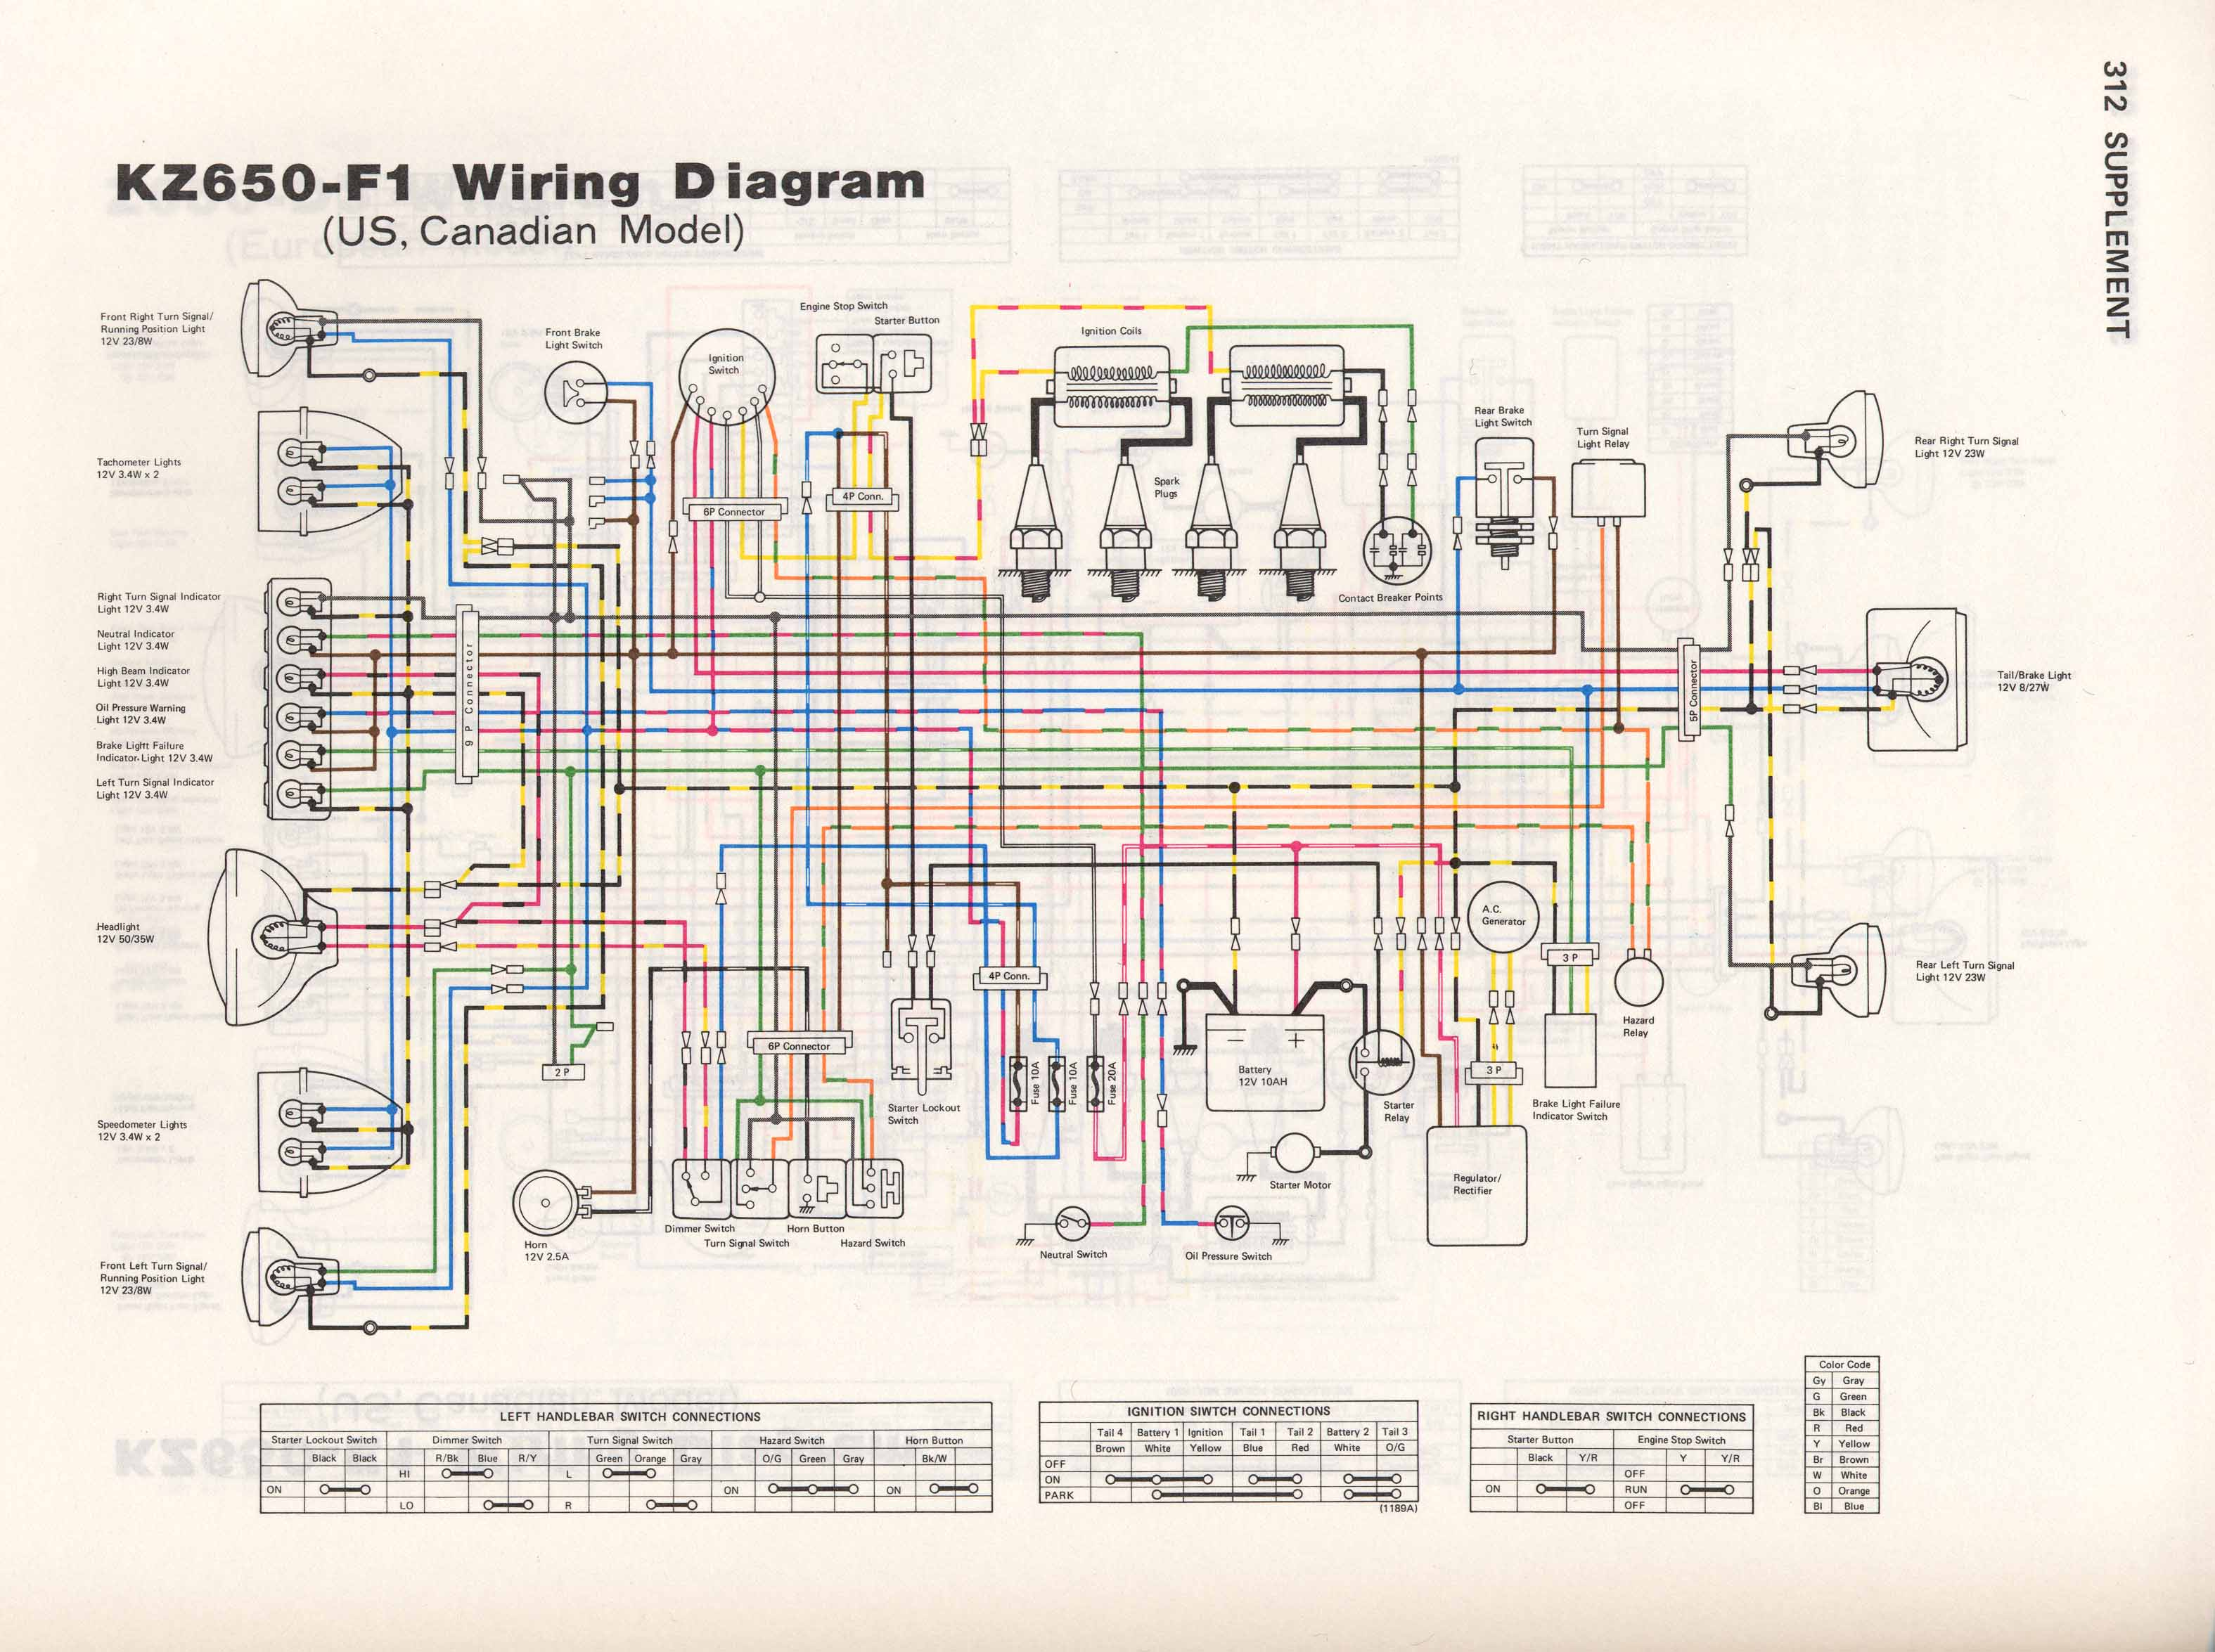 KZ650 F1 kz650 info wiring diagrams 1980 kawasaki 440 ltd wiring diagram at bayanpartner.co